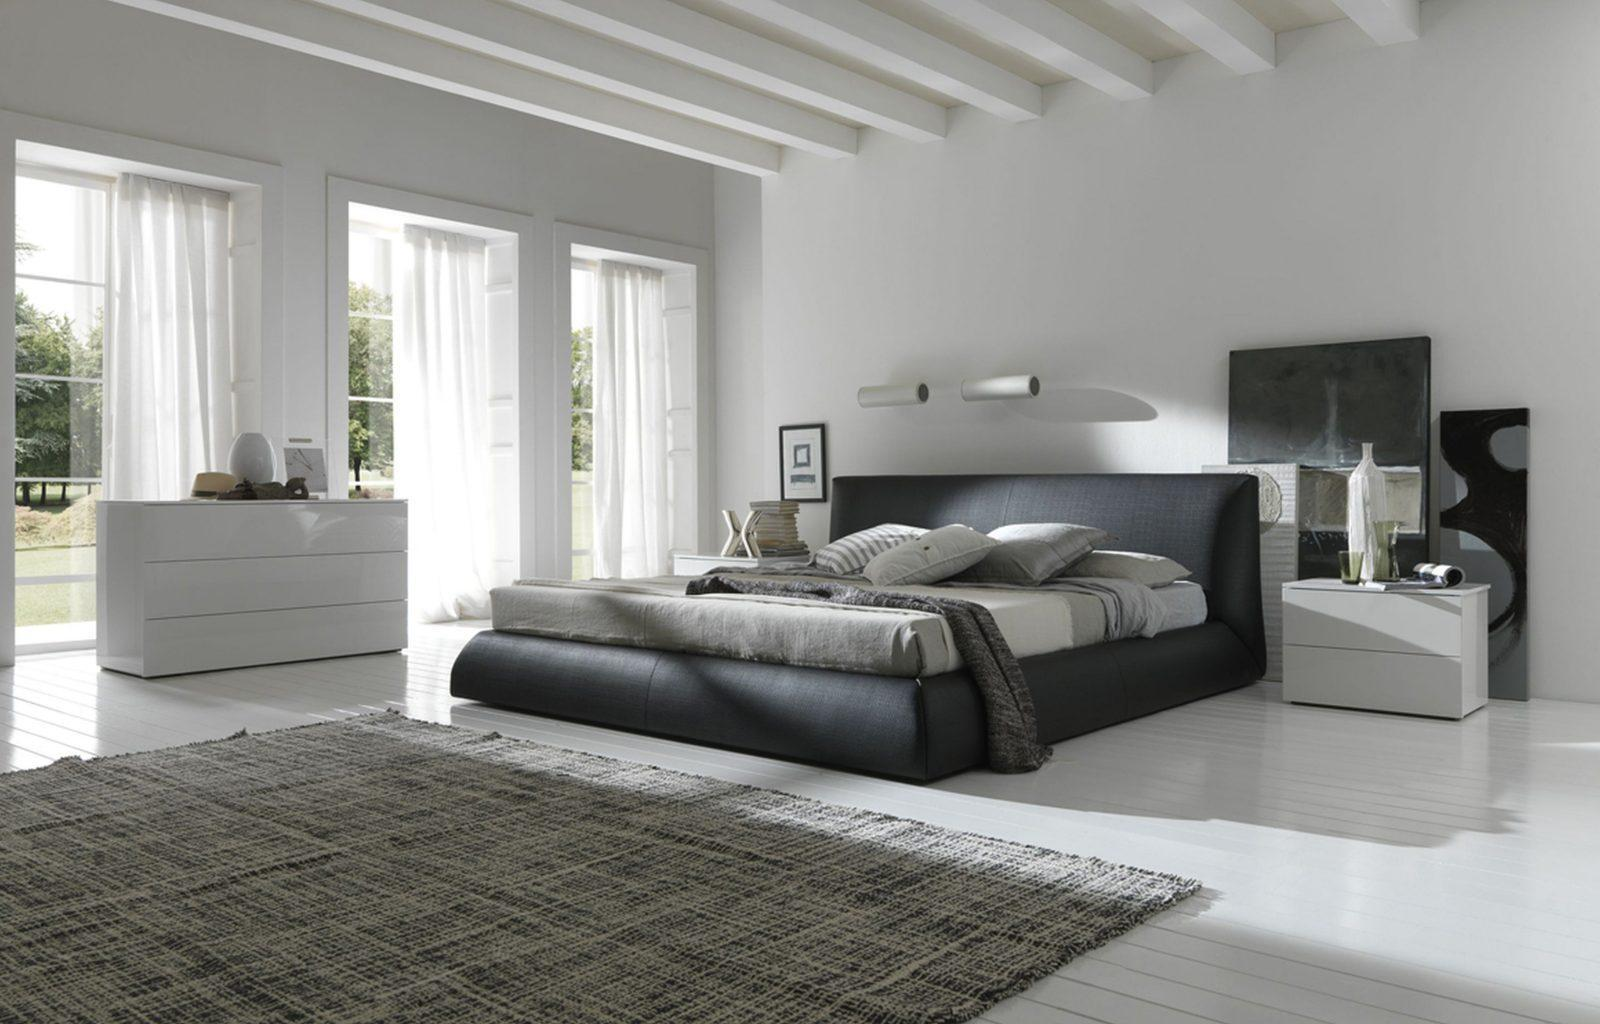 6 Tips on How to Create a Bedroom of Your Dreams